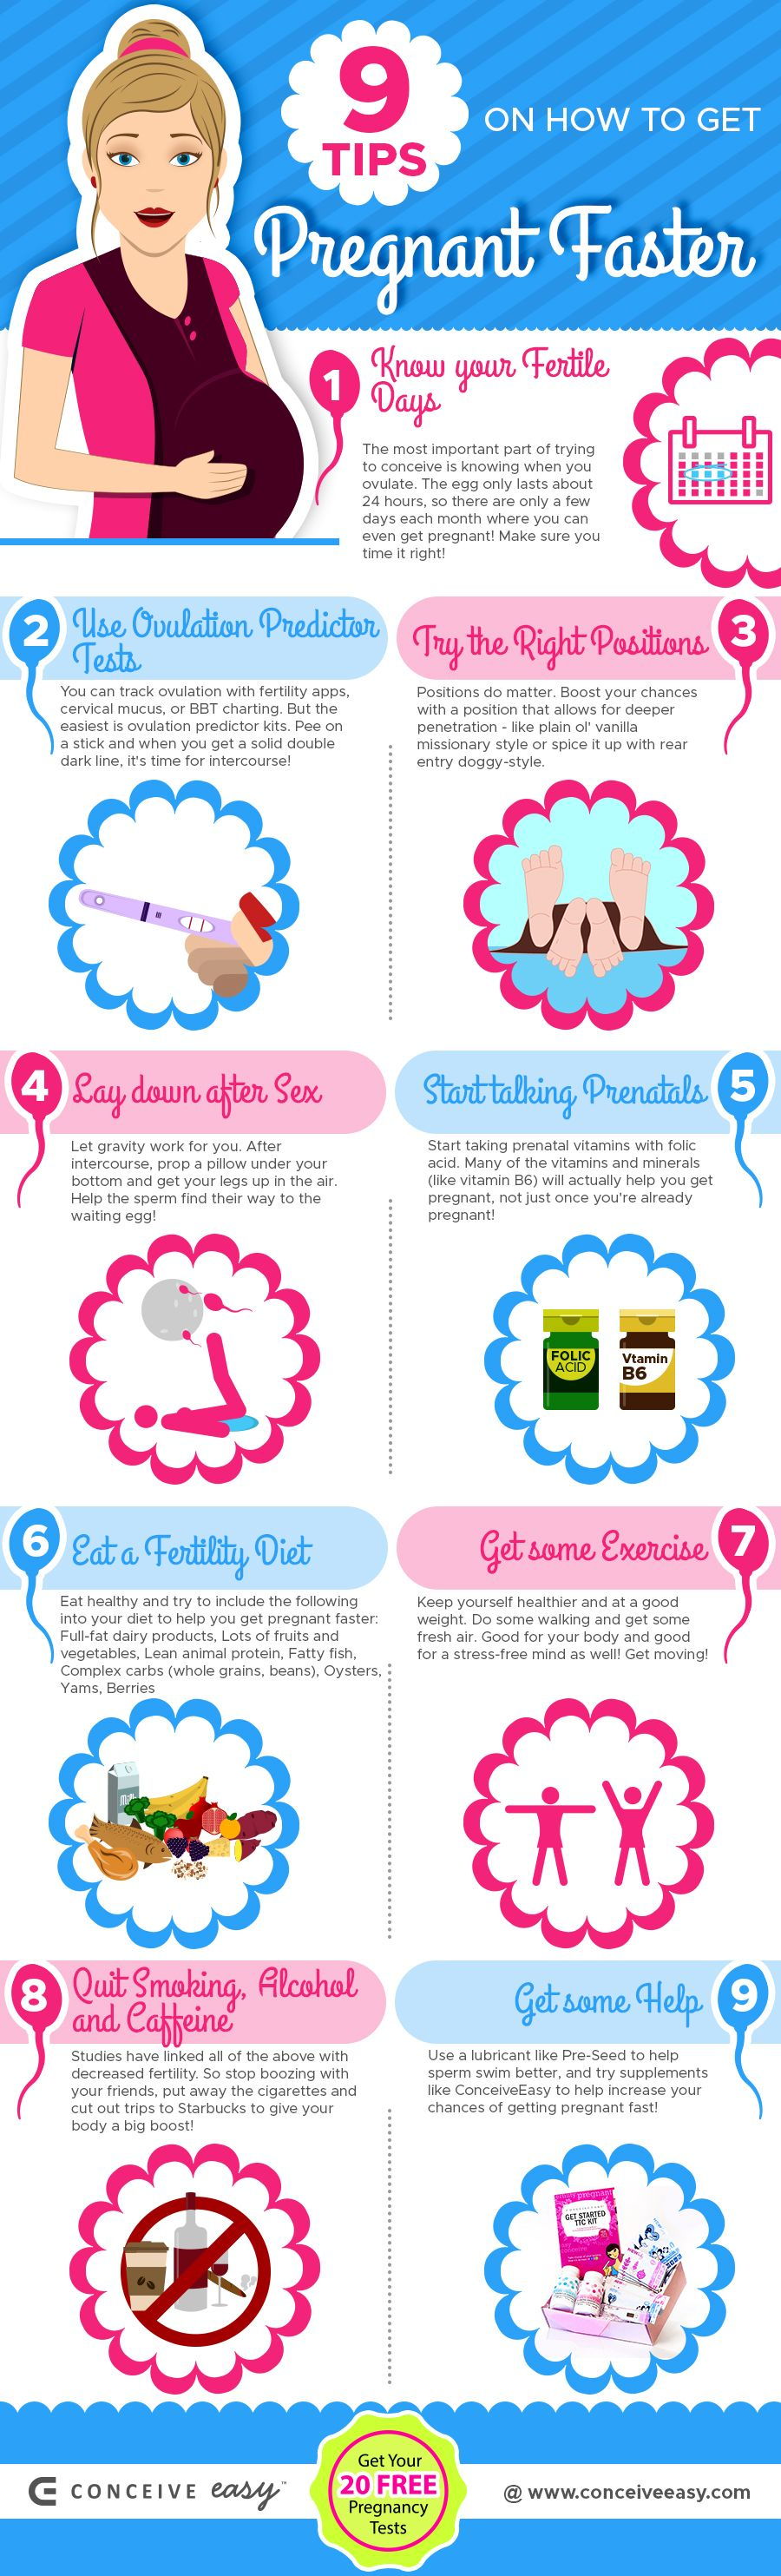 how to get pregnant fast: 9 dos and don'ts | babies: fertility